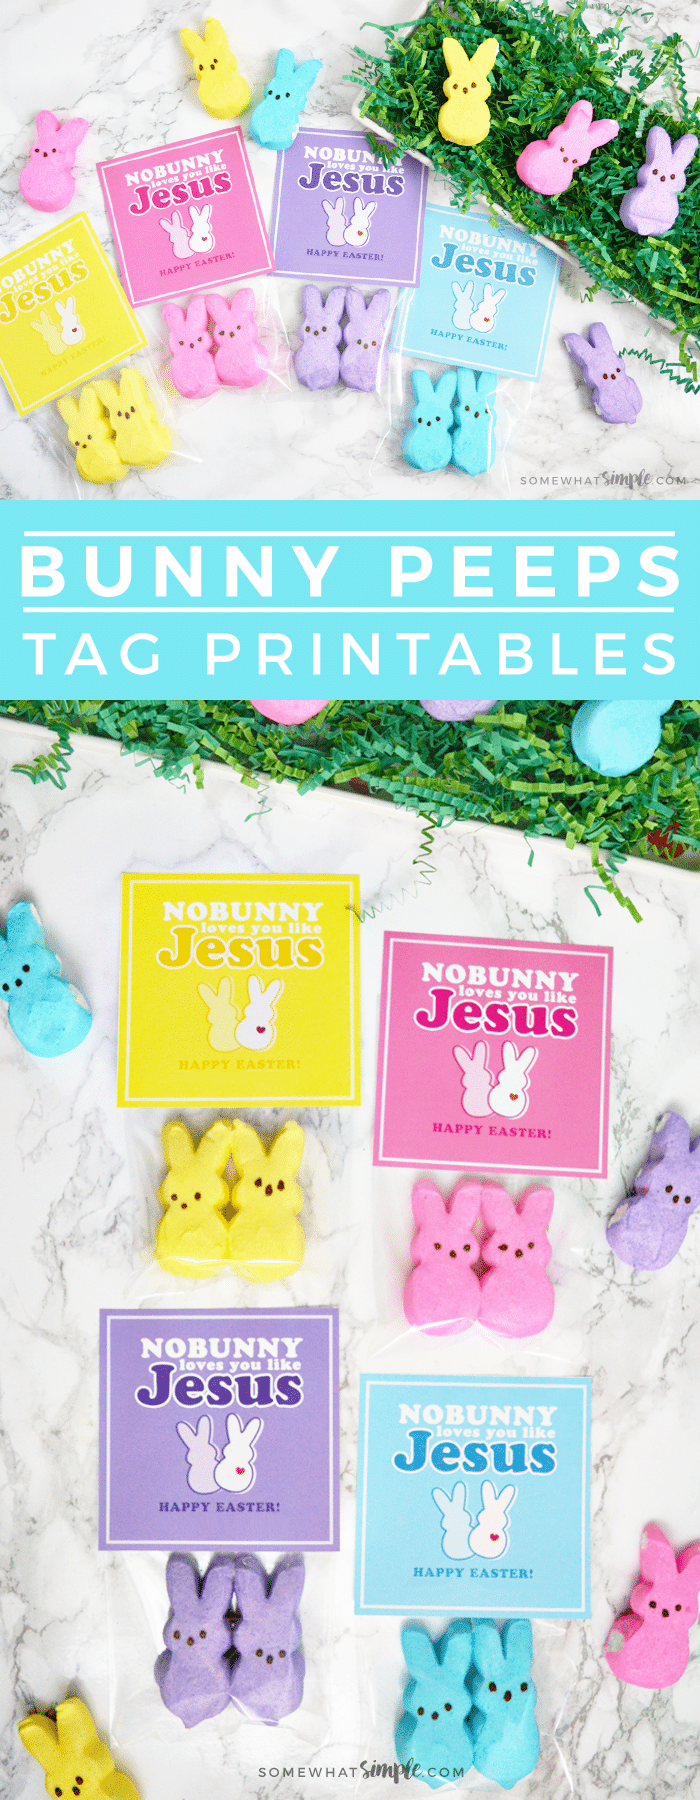 Easter gifts peeps candy tag printables if youre looking for some darling yet meaningful easter gifts then these peeps candy tags are the perfect solution great for church handouts negle Image collections